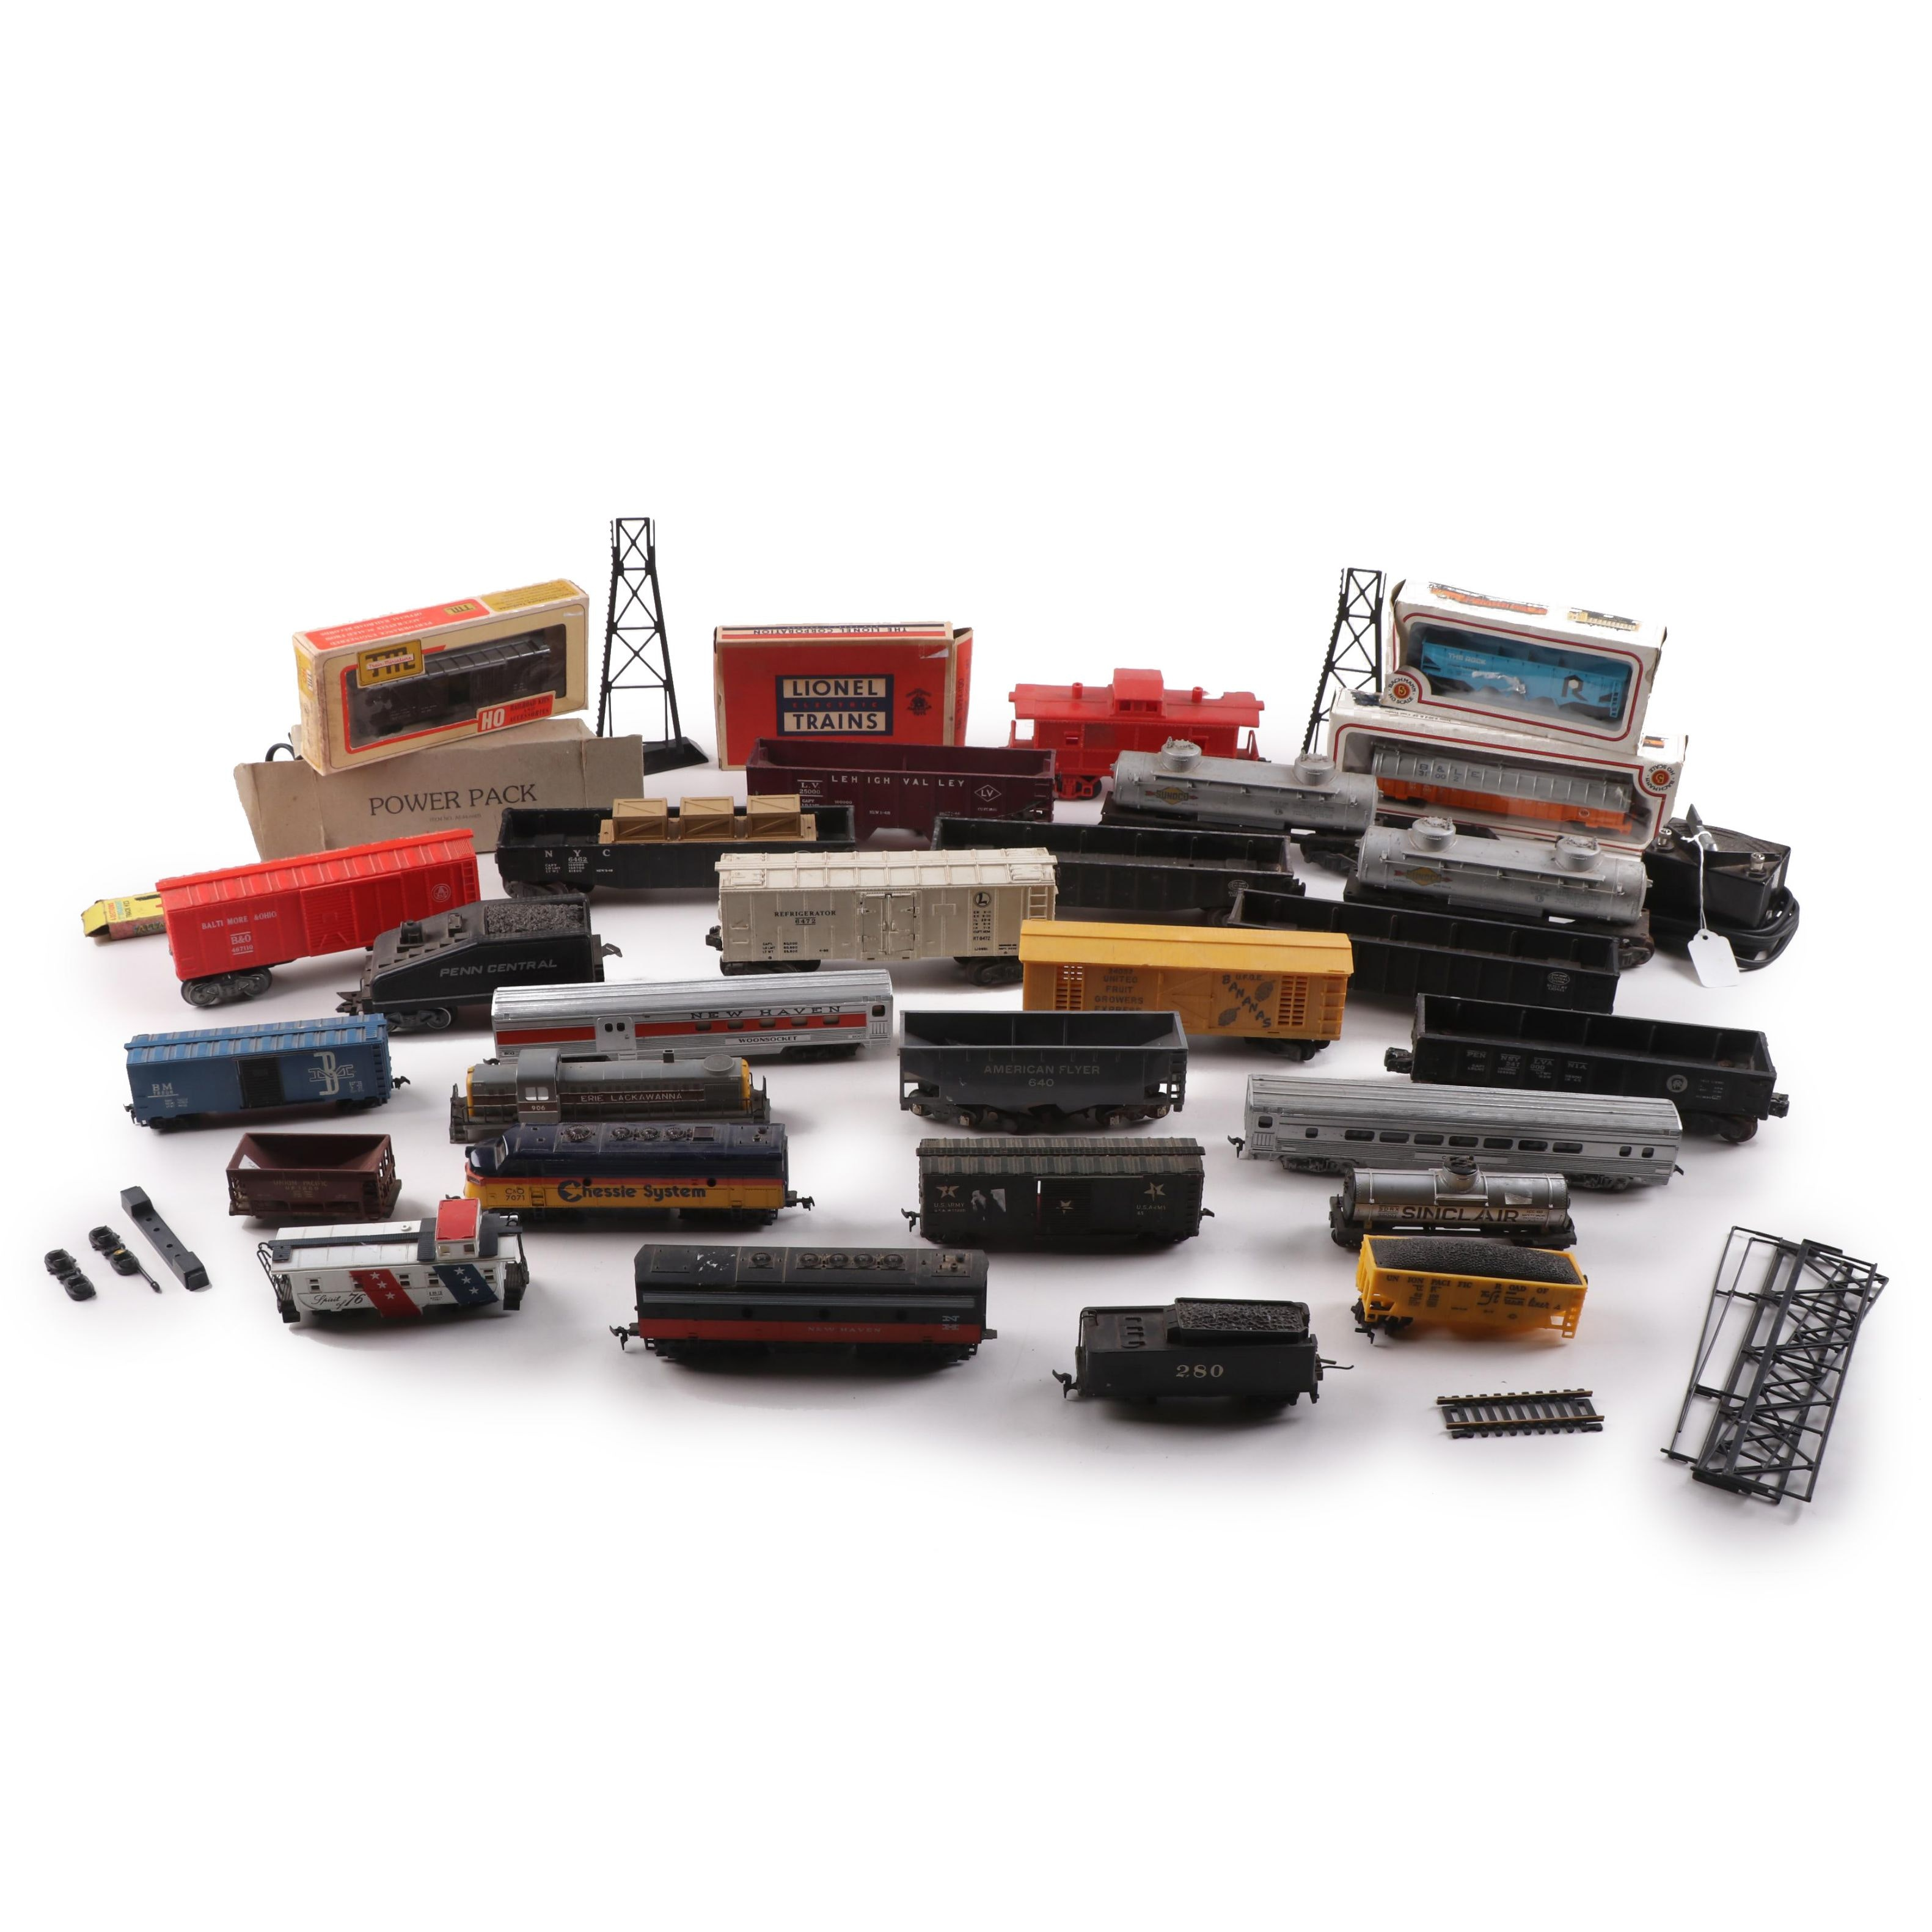 Vintage HO and O Scale Model Train Cars and Accessories